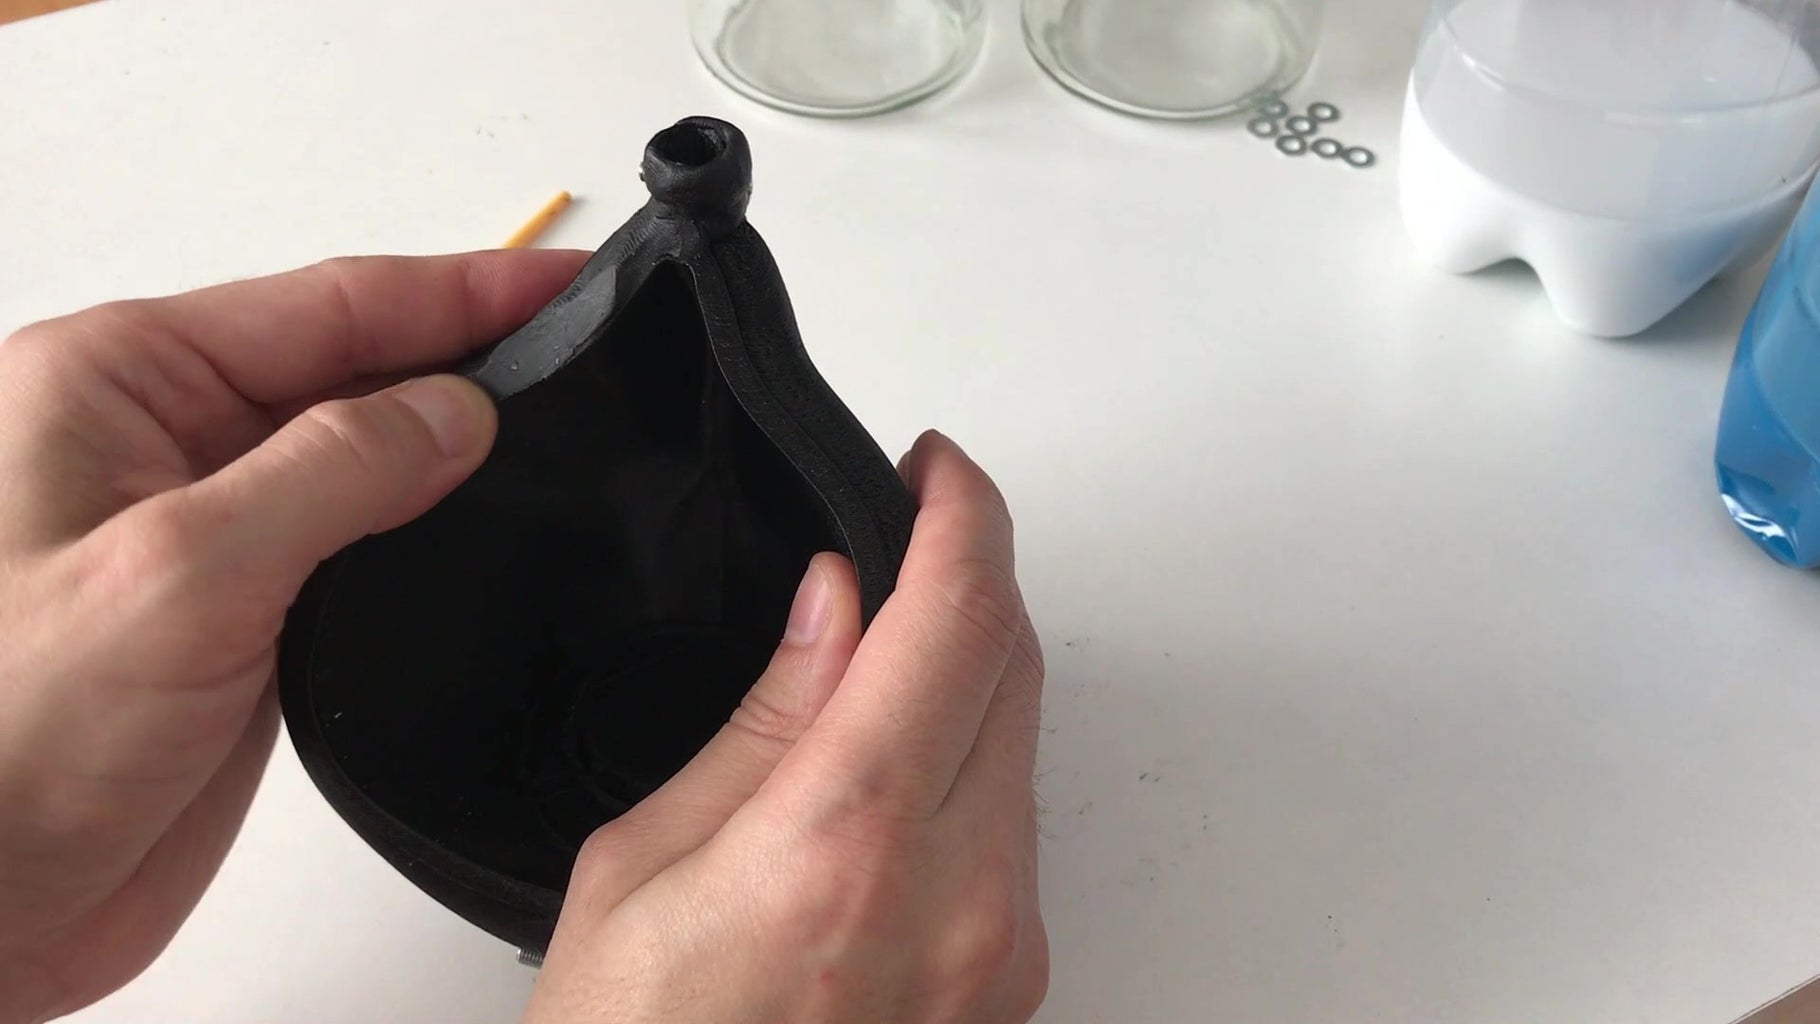 Sealing the Mold With Sculpting Wax